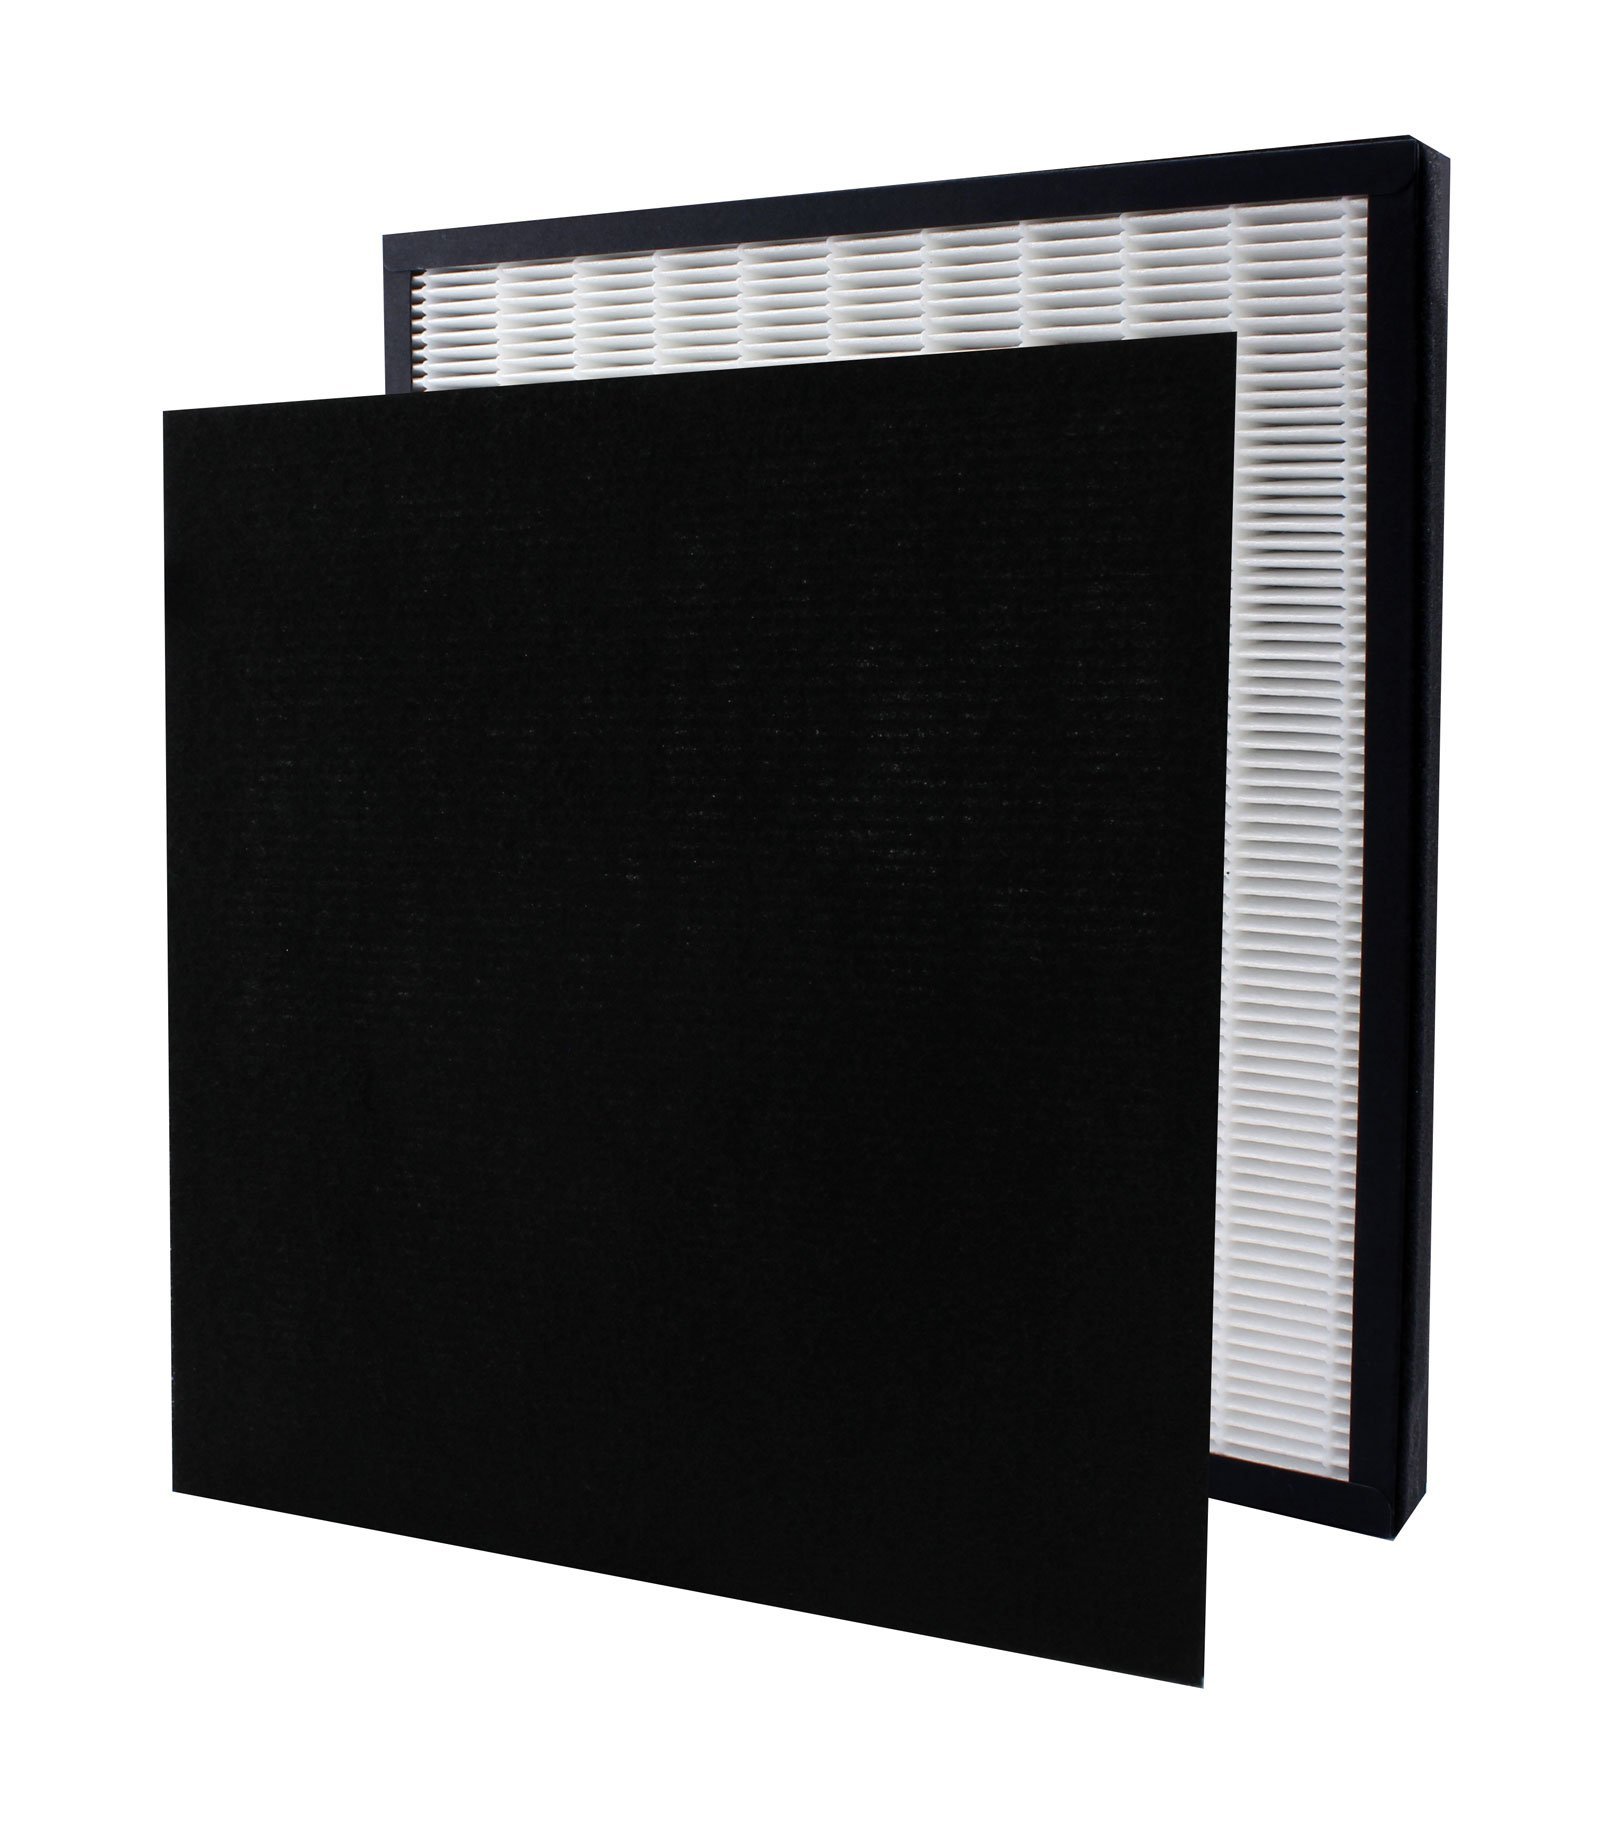 True Hepa Replacement Filter with Activated Carbon Prefilter - Compatible with InvisiClean Aura Air Purifier IC-5018